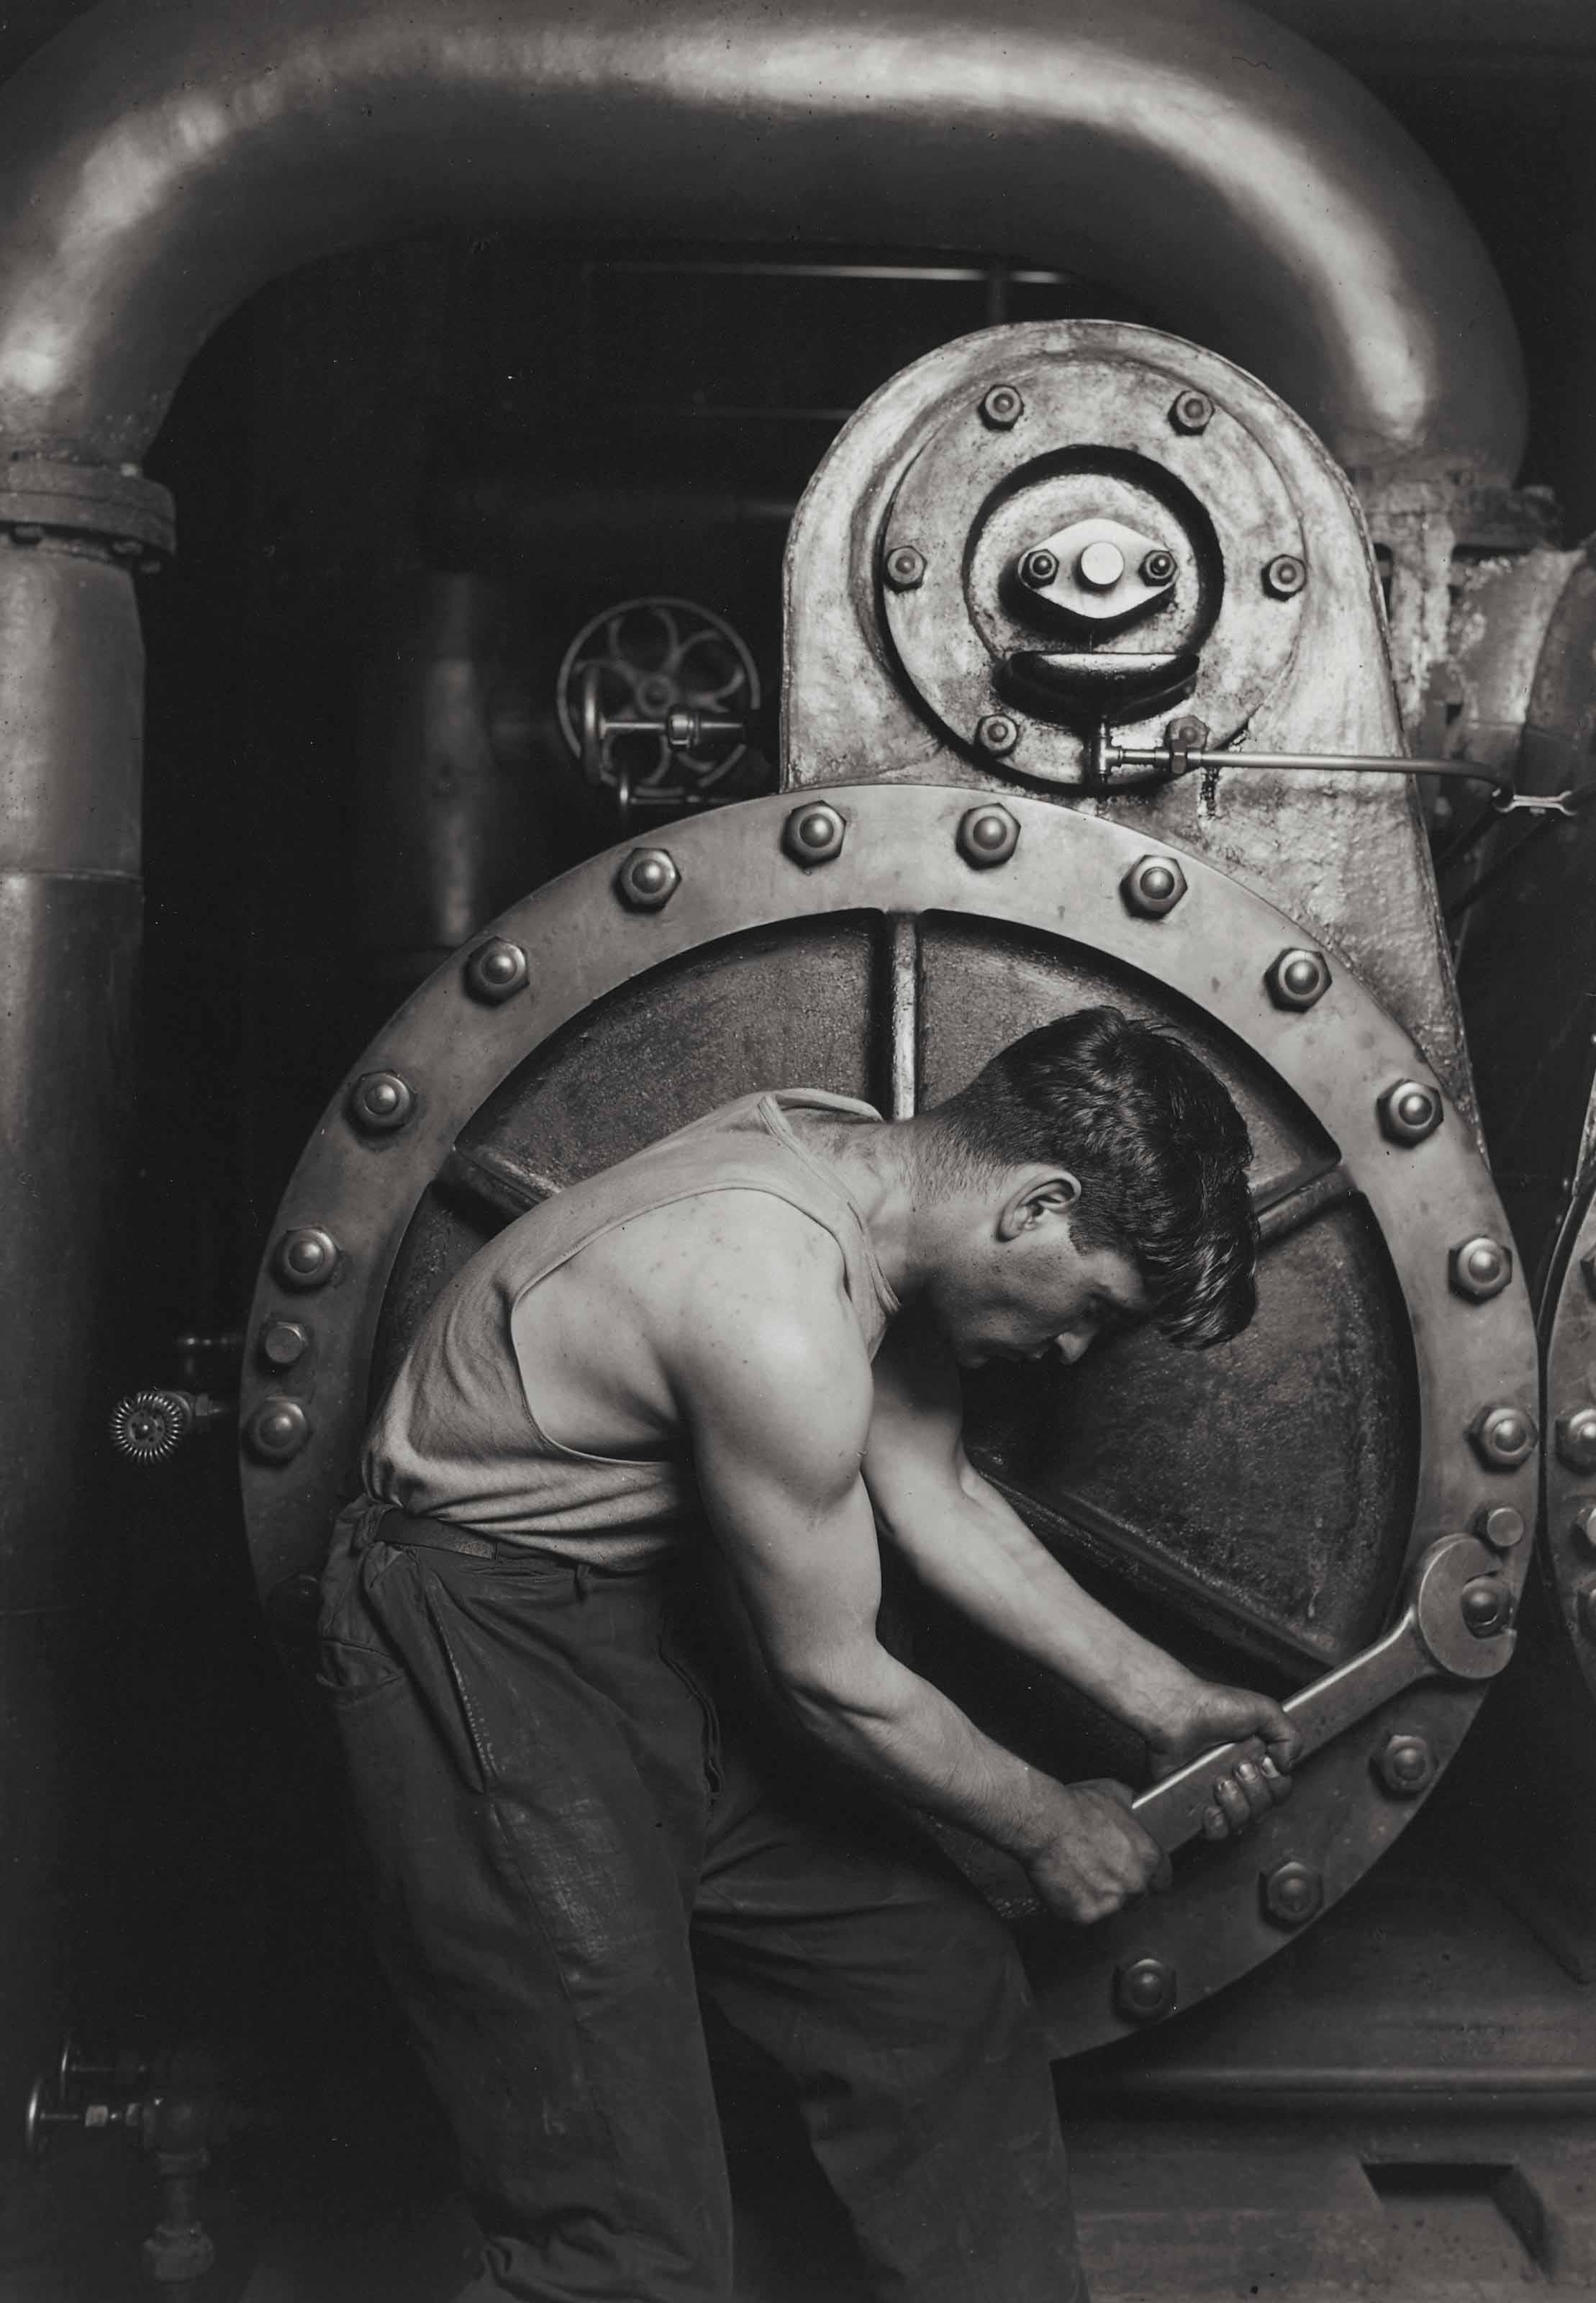 Mechanic at Steam Pump in Electric Power House, 1921